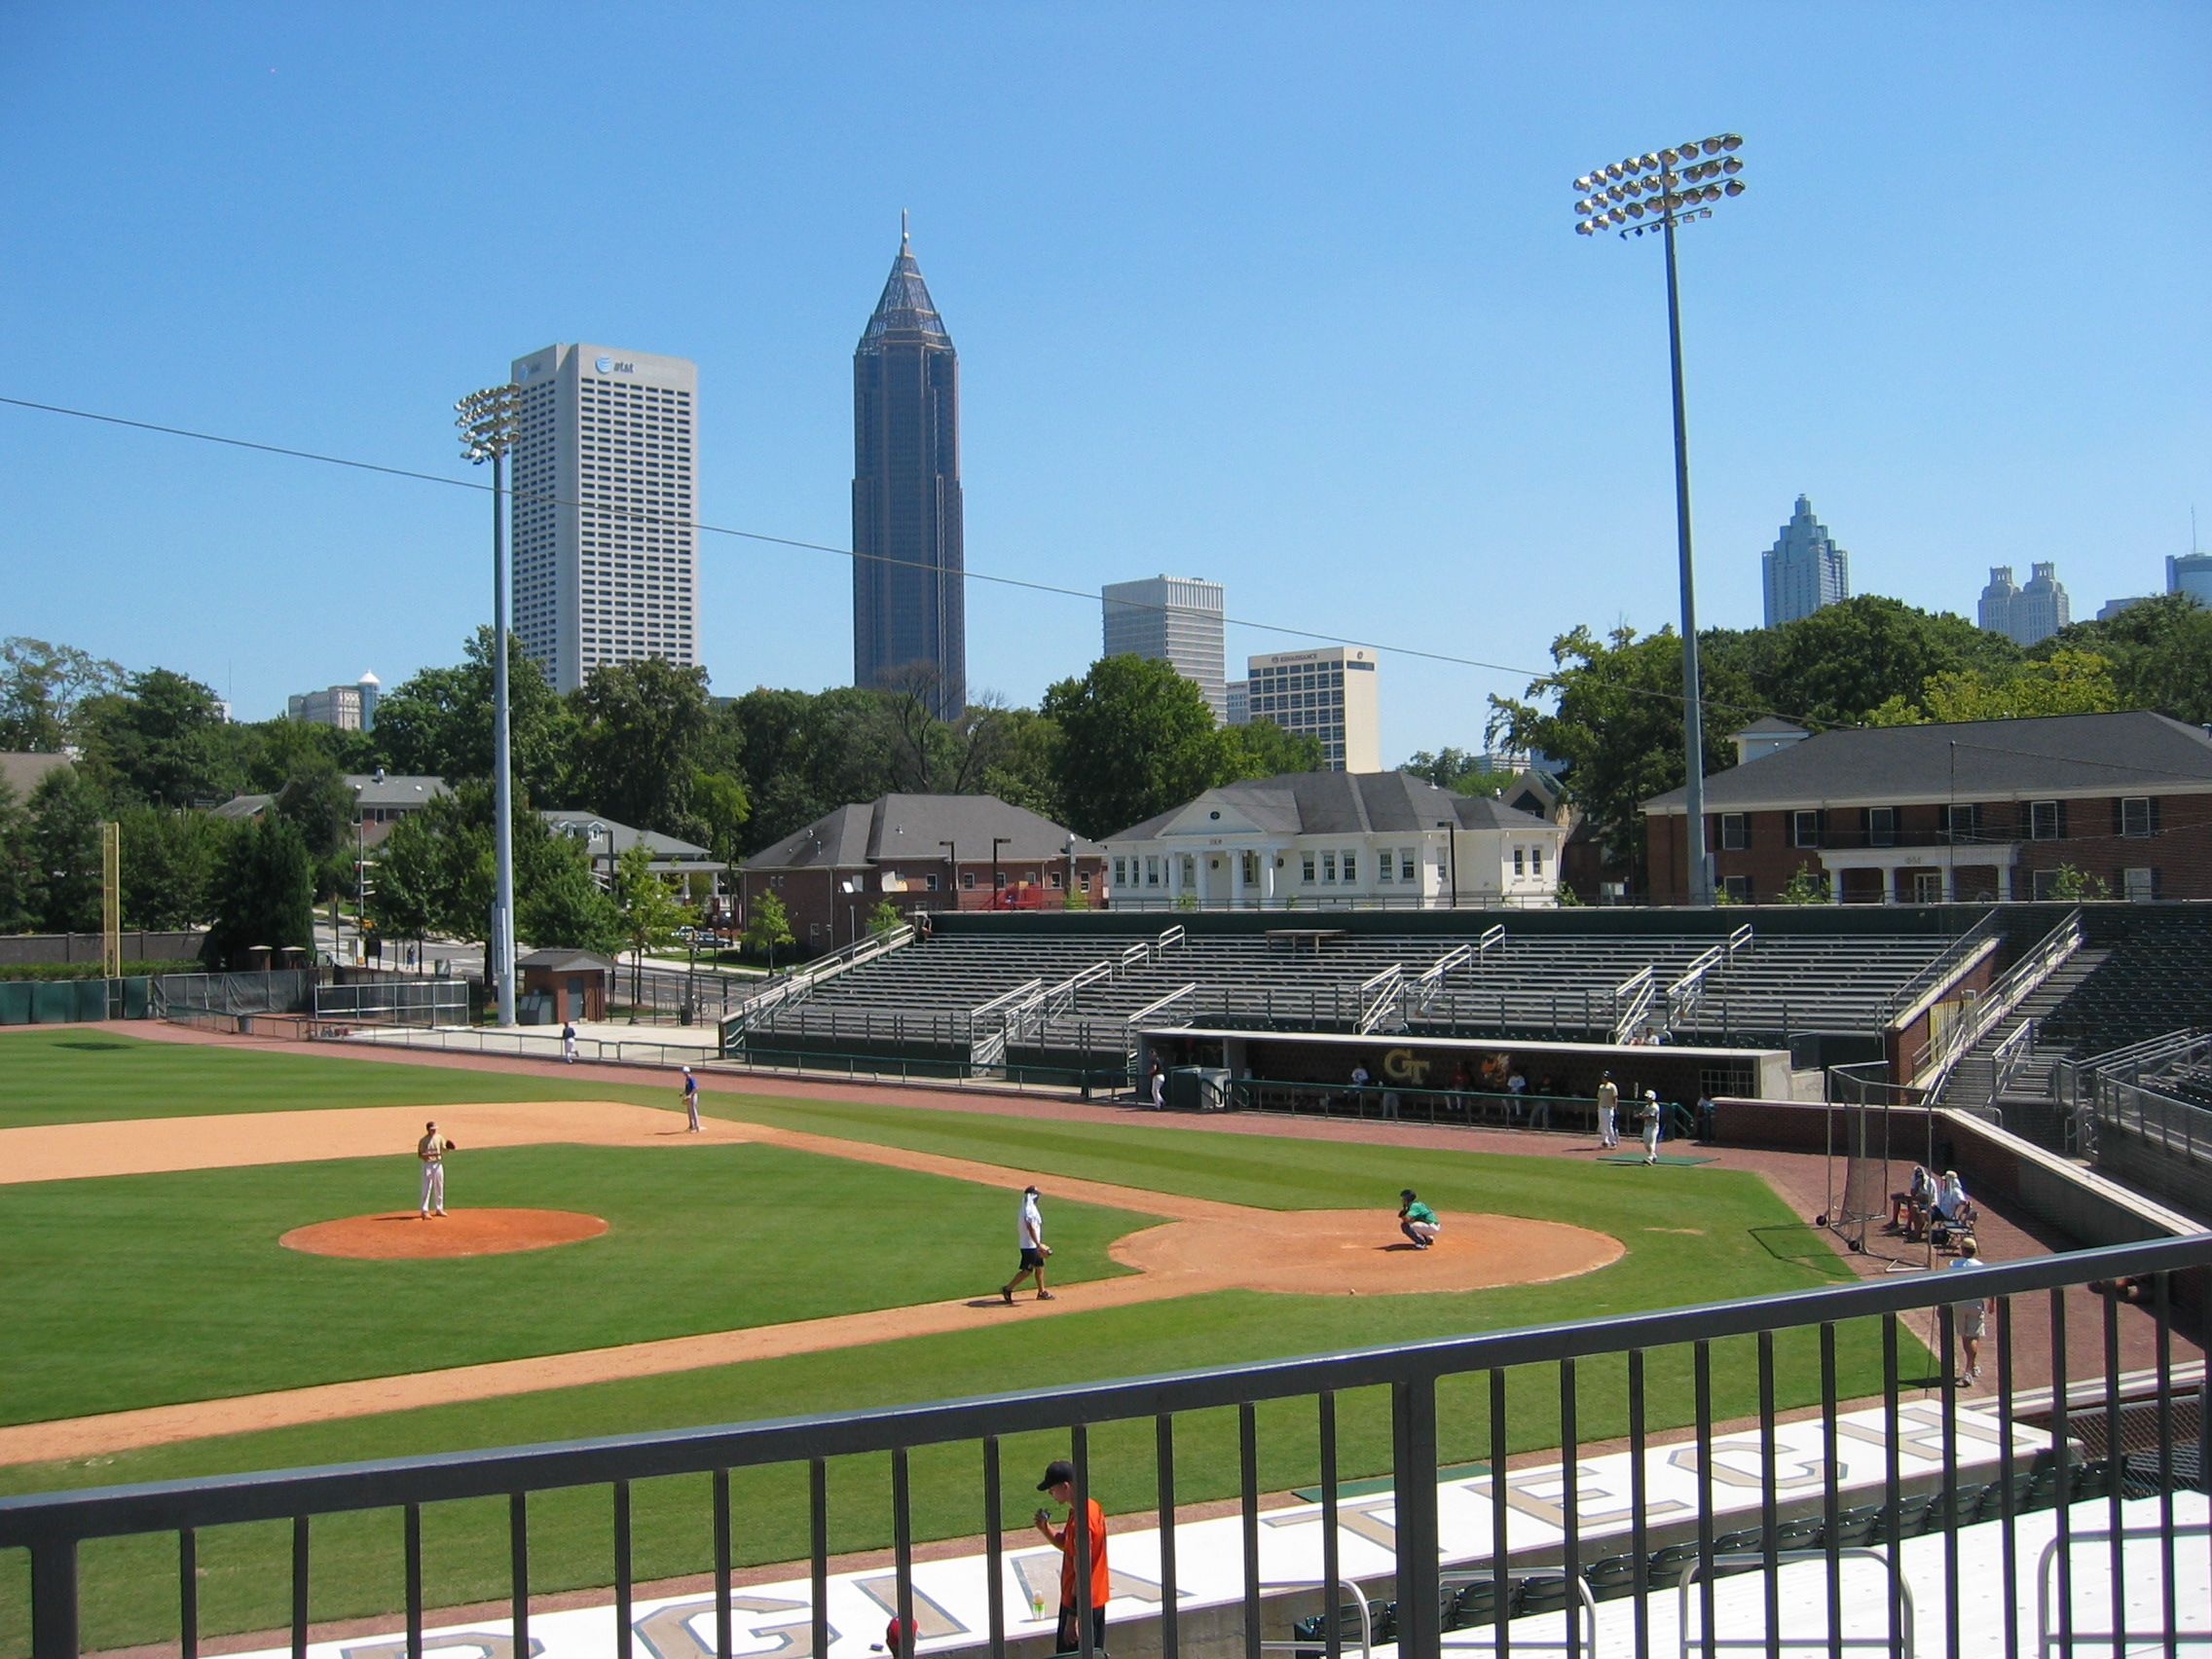 Russ Chandler Stadium Home Of Georgia Tech Baseball Has Some Great City Views